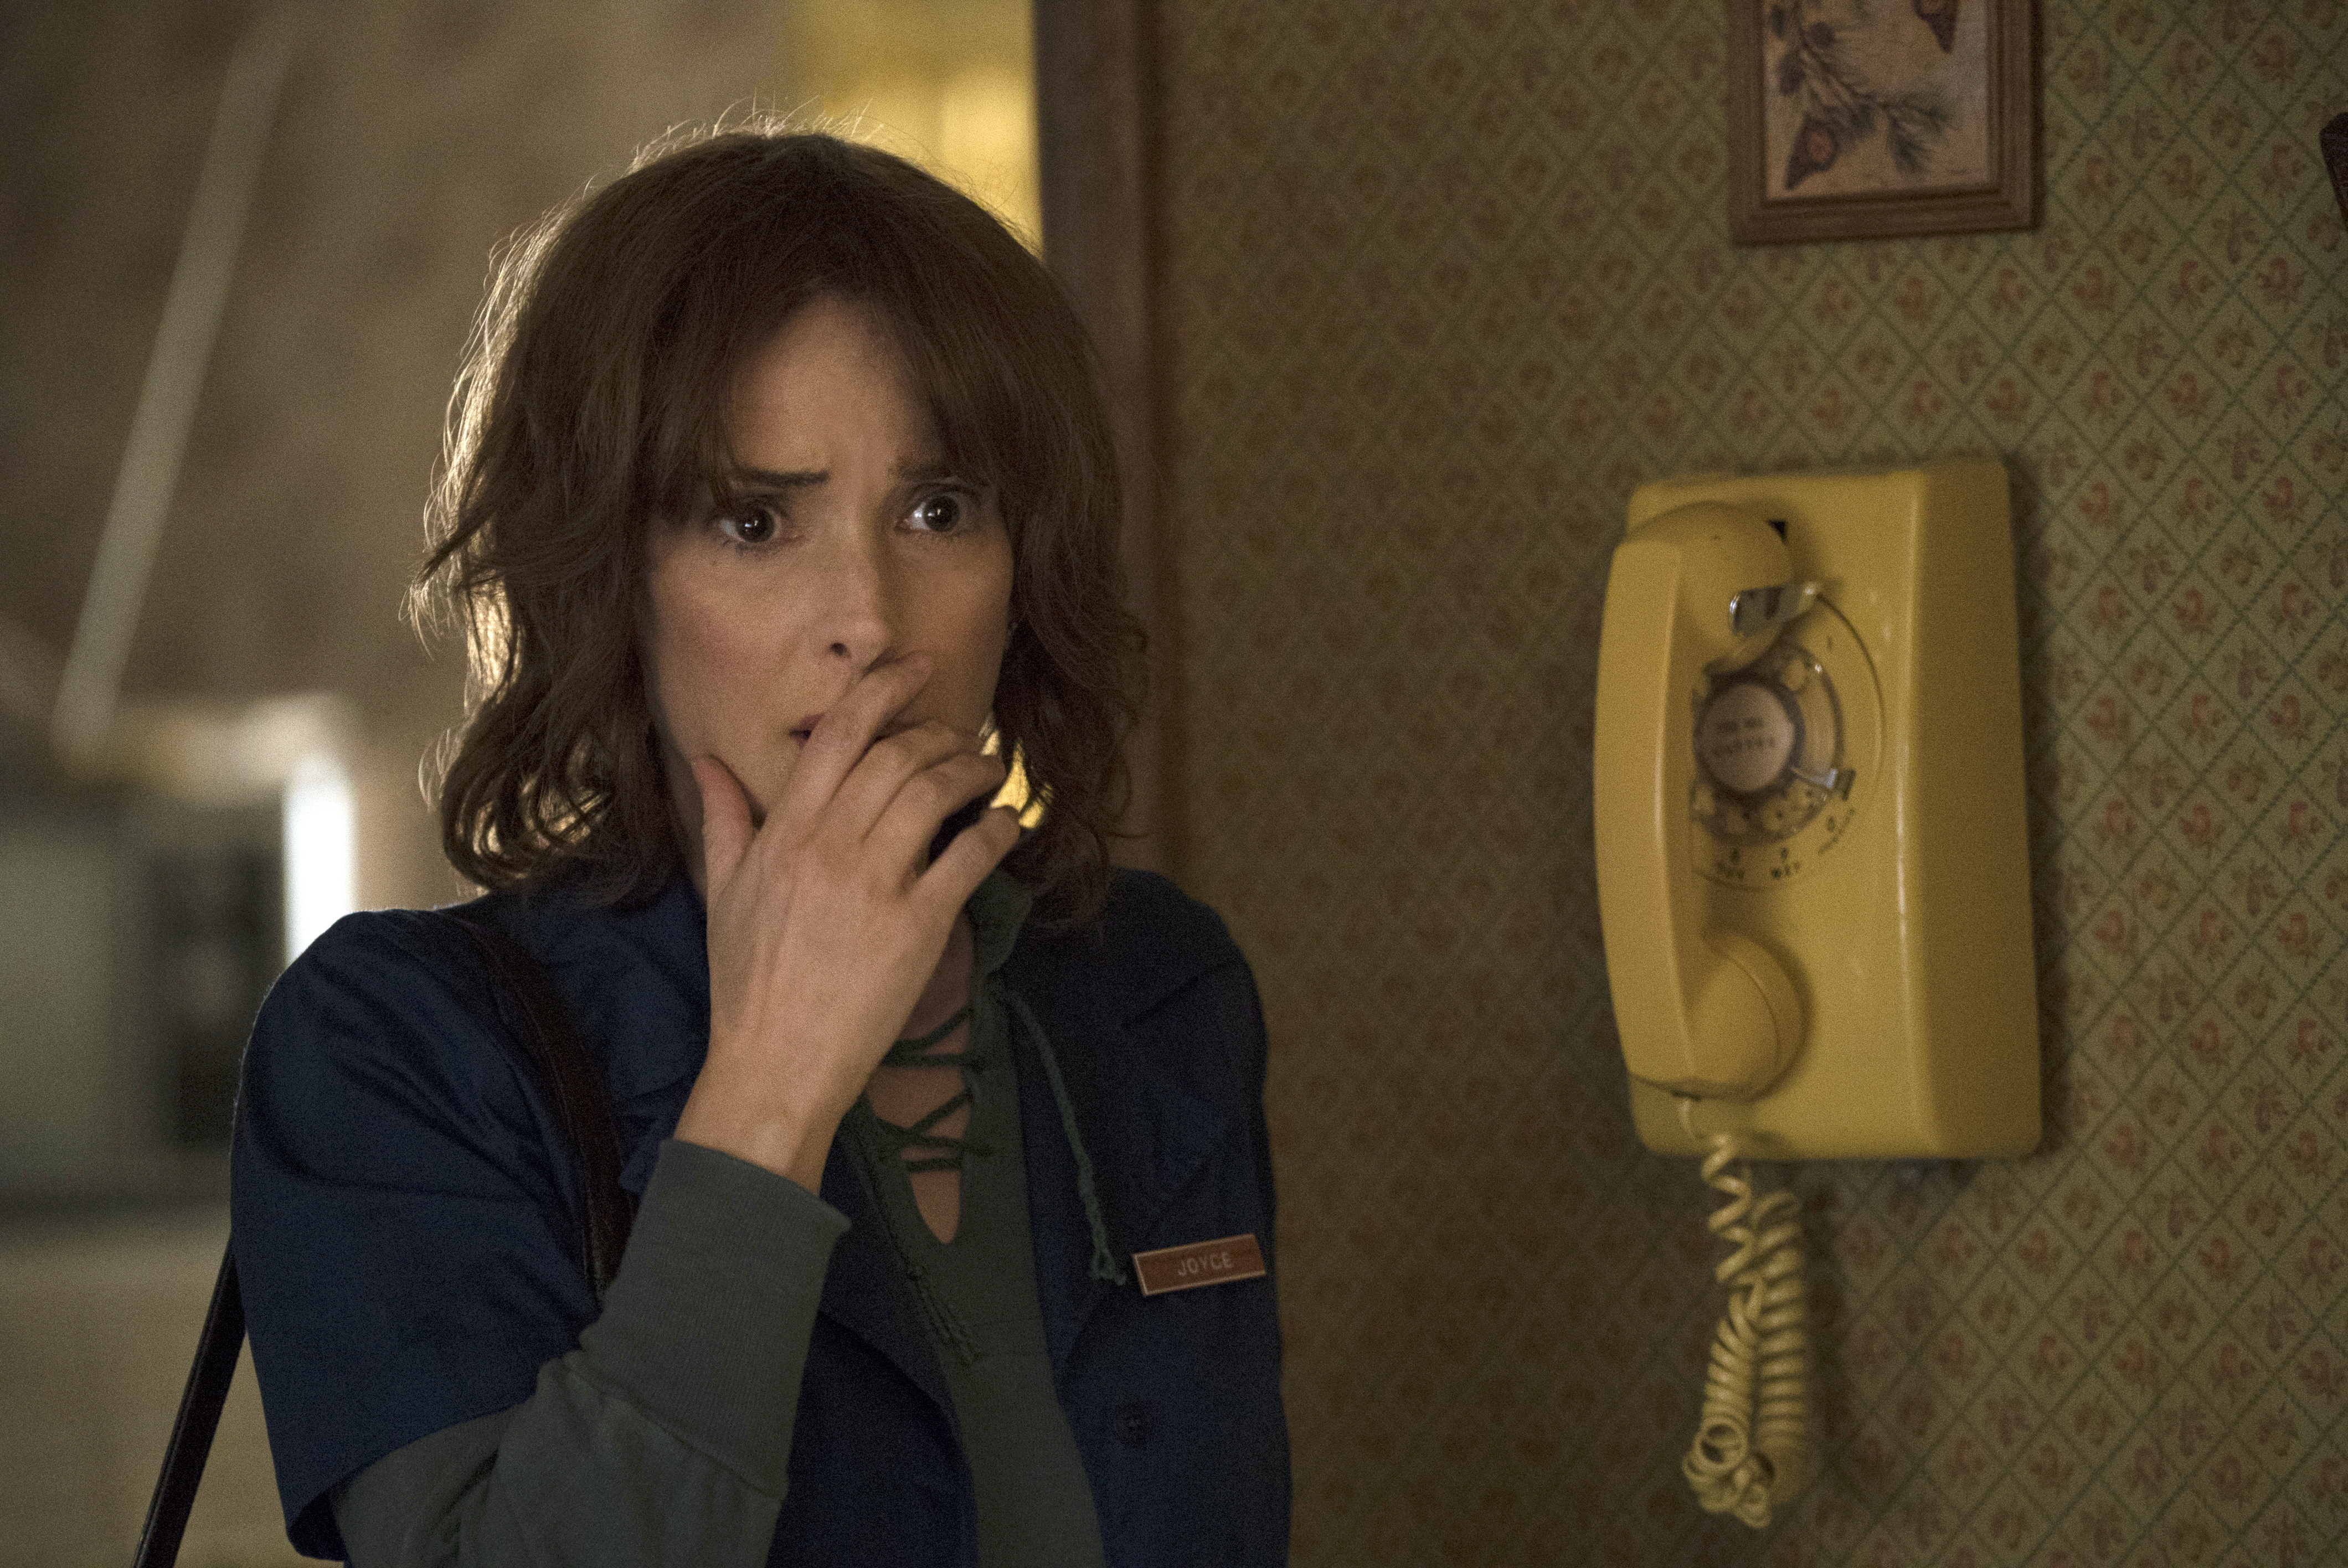 """This image released by Netflix shows Winona Ryder in a scene from """"Stranger Things."""" Ryder was nominated for a Golden Globe award for best actress in TV drama on Monday, Dec. 12, 2016. The 74th Golden Globe Awards ceremony will be broadcast on Jan. 8, on NBC. (Curtis Baker/Netflix via AP) 